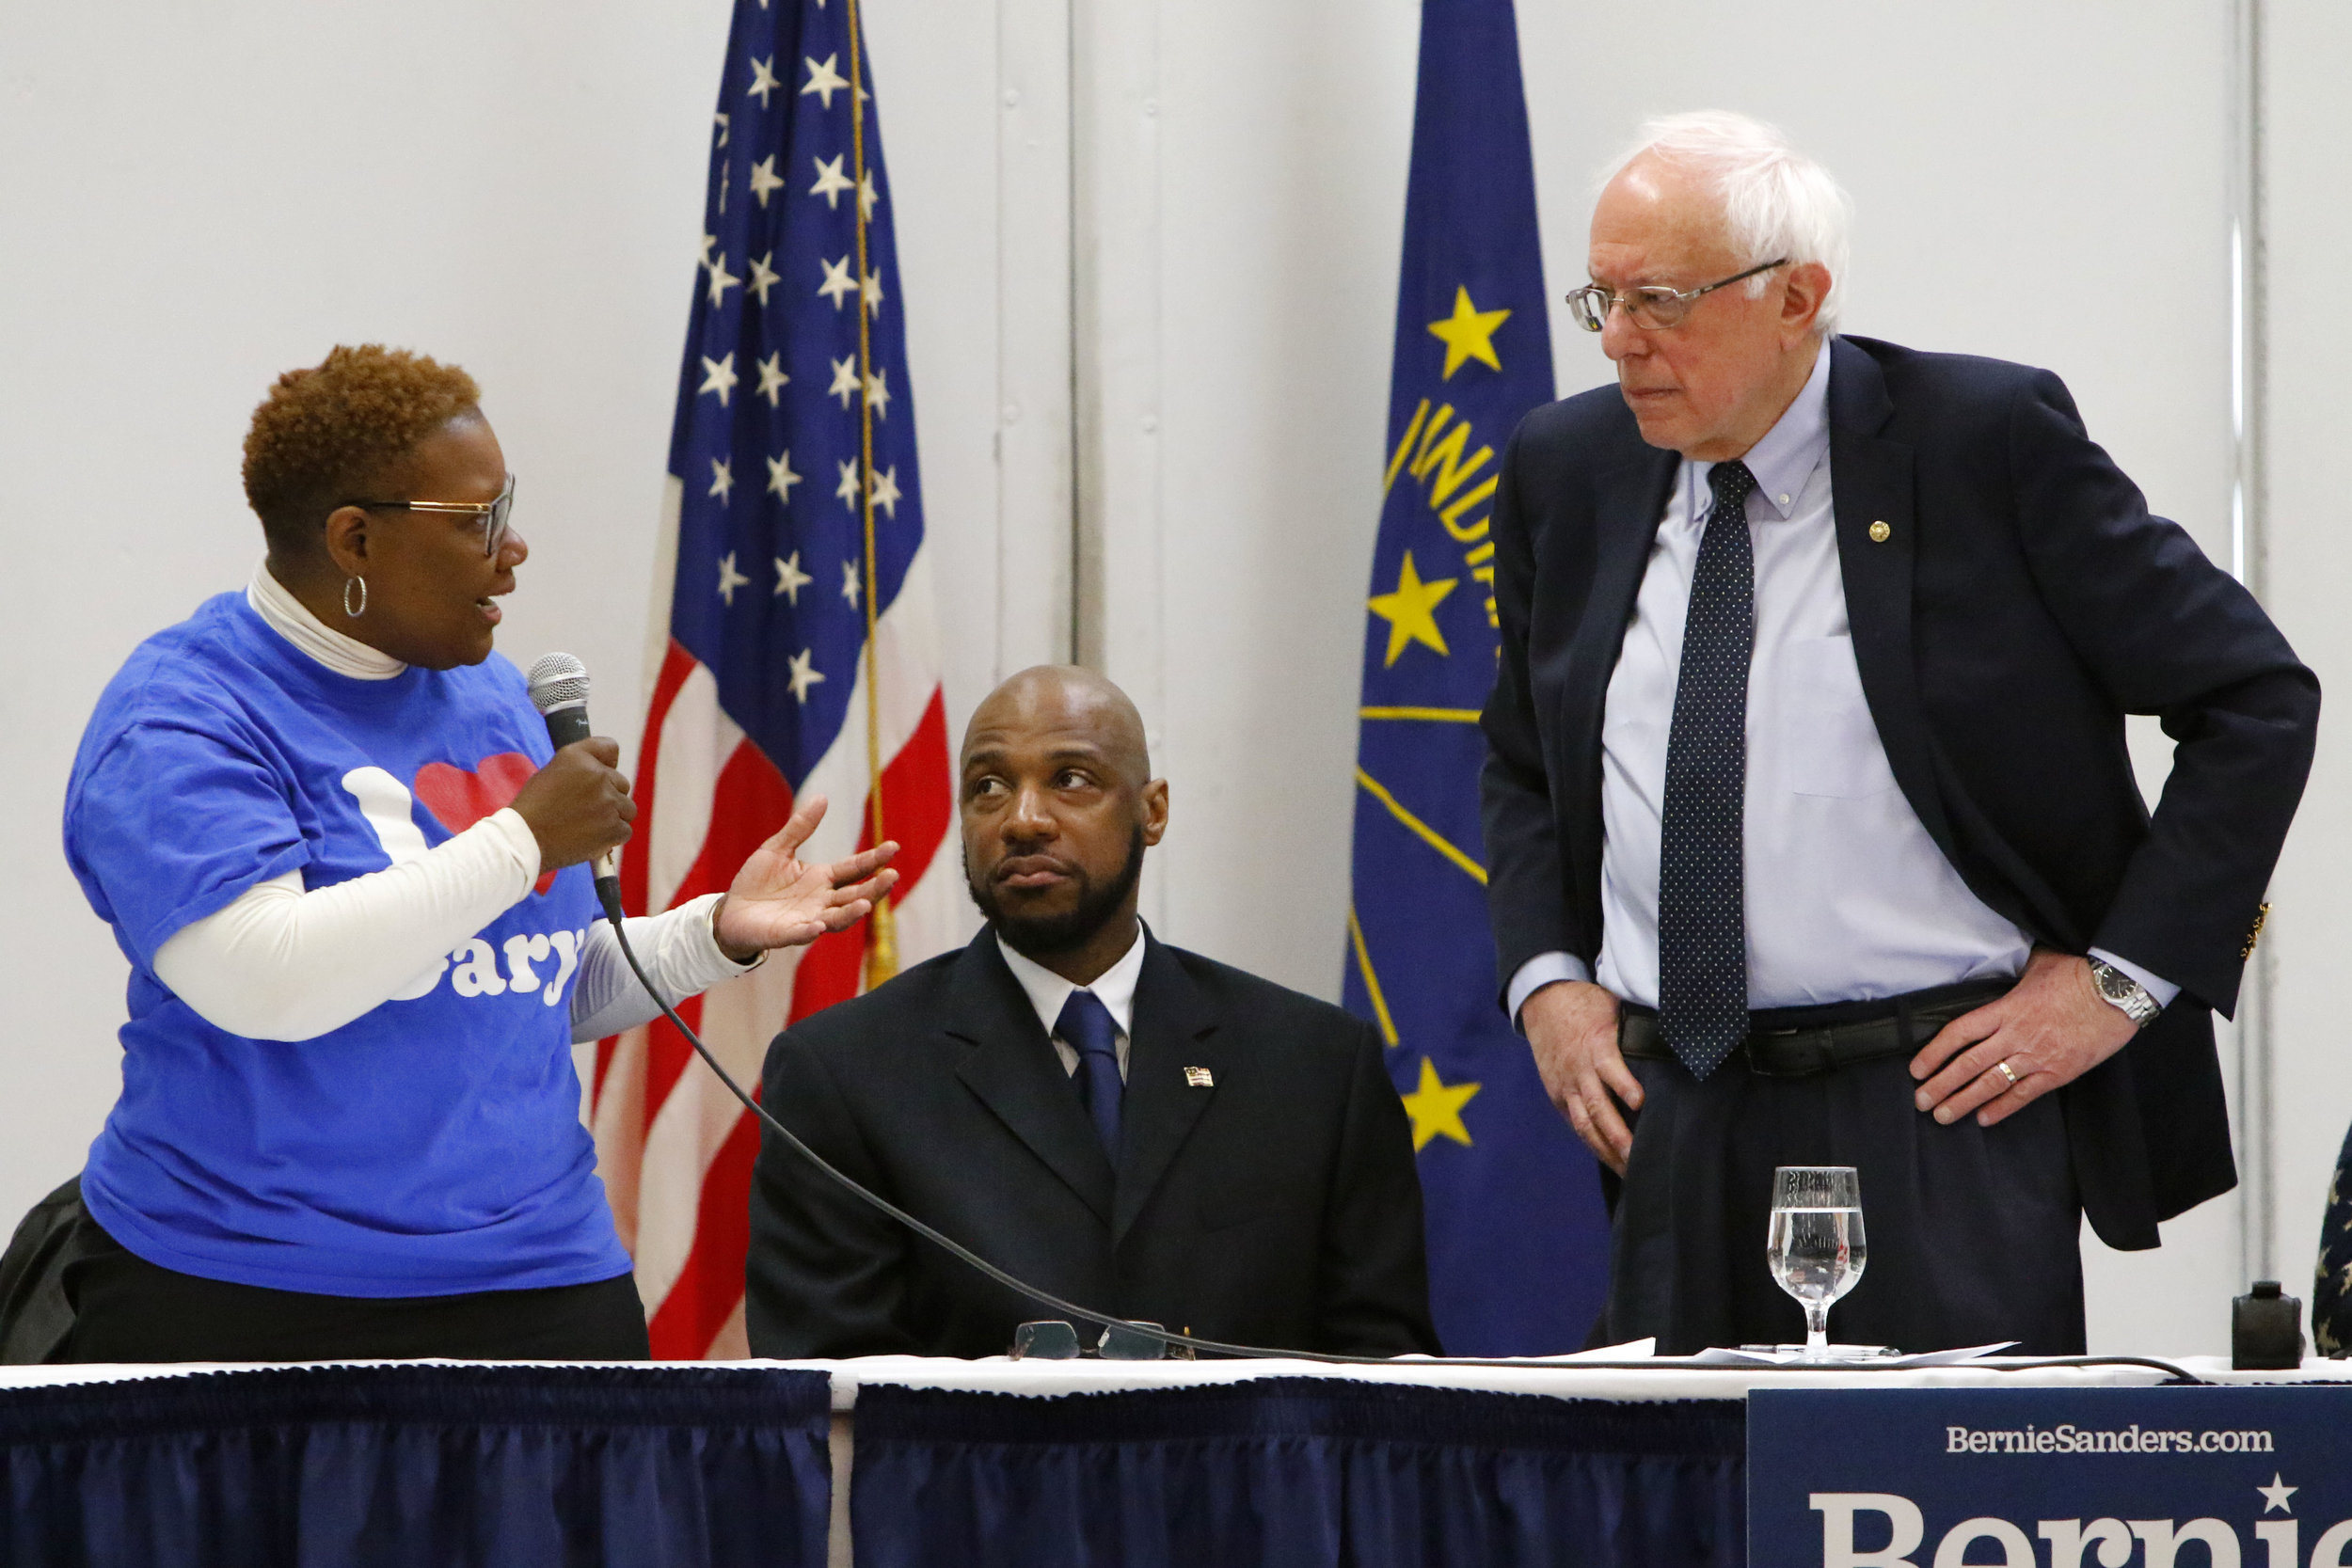 Gary Mayor Karen Freeman-Wilson, left, speaks to U.S. Sen. Bernie Sanders, I-Vermont, at the Genesis Convention Center during a meeting with community leaders. Seated between them is Ron Brewer, Gary councilman at-large. Sanders made other stops in Wisconsin, Michigan, Pennsylvania and Ohio.